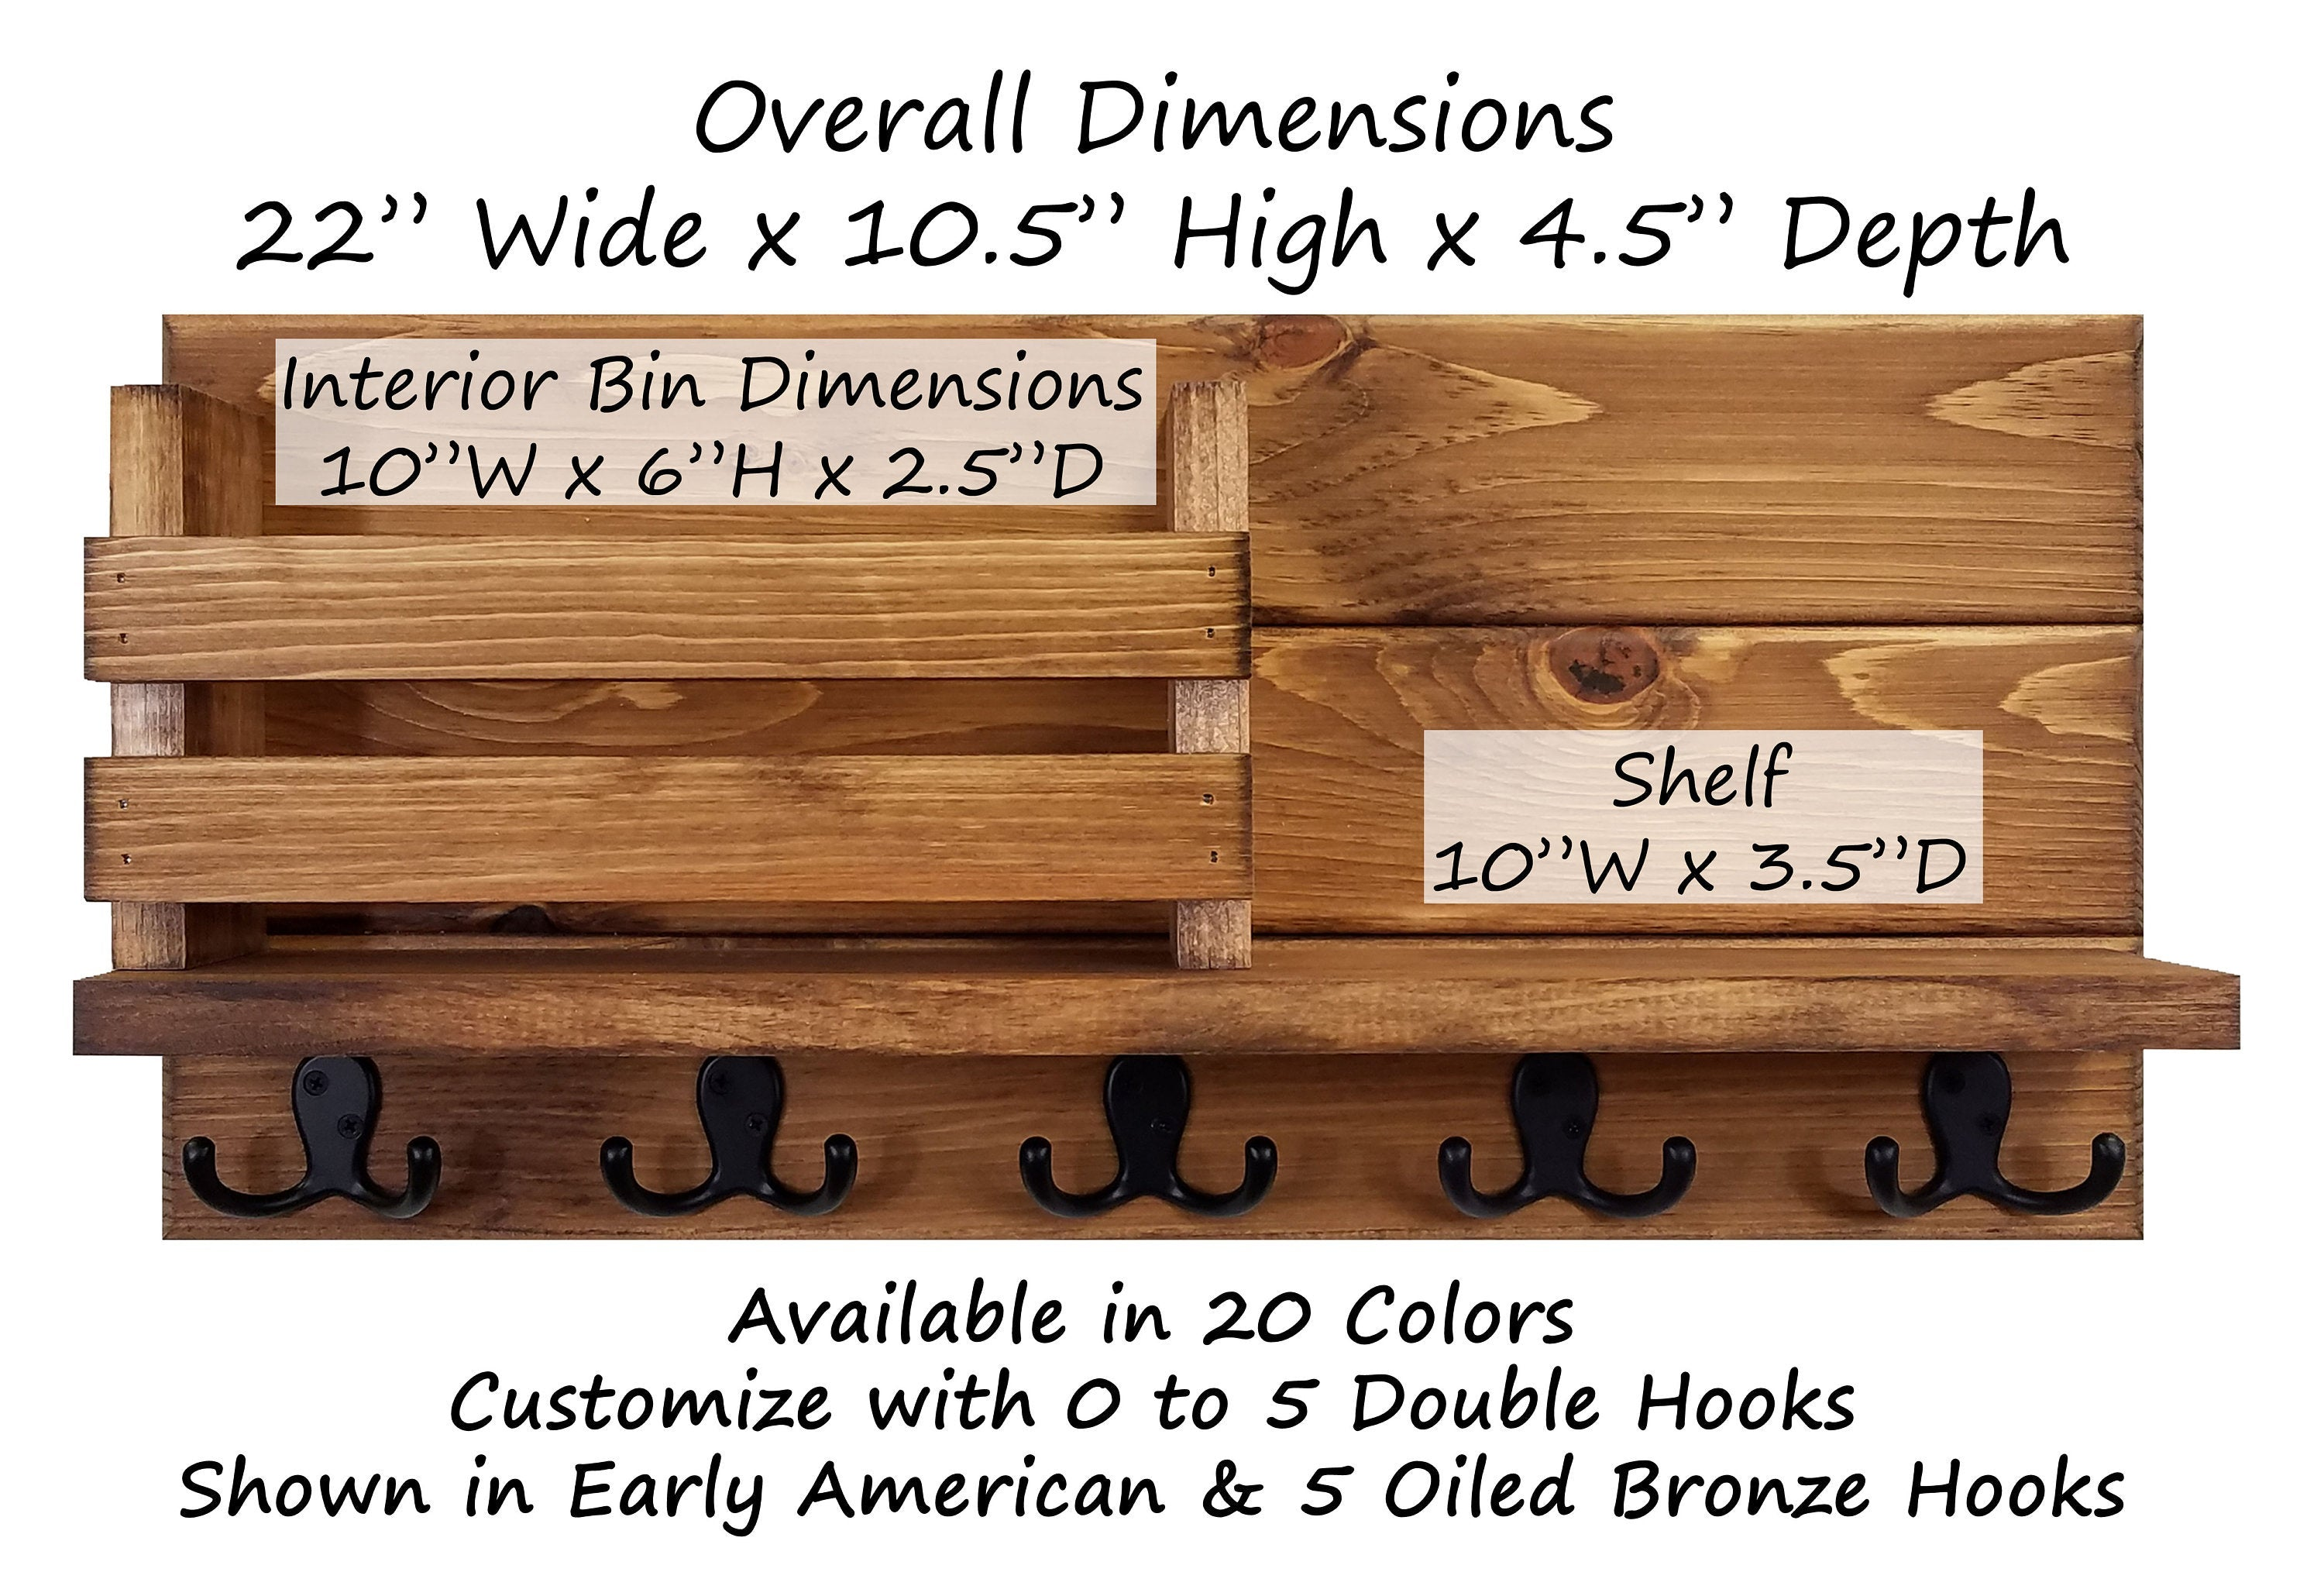 Discovery Organizer, Mail Bin, Key Holder & Floating Shelf - 20 Stain Colors - Renewed Decor & Storage